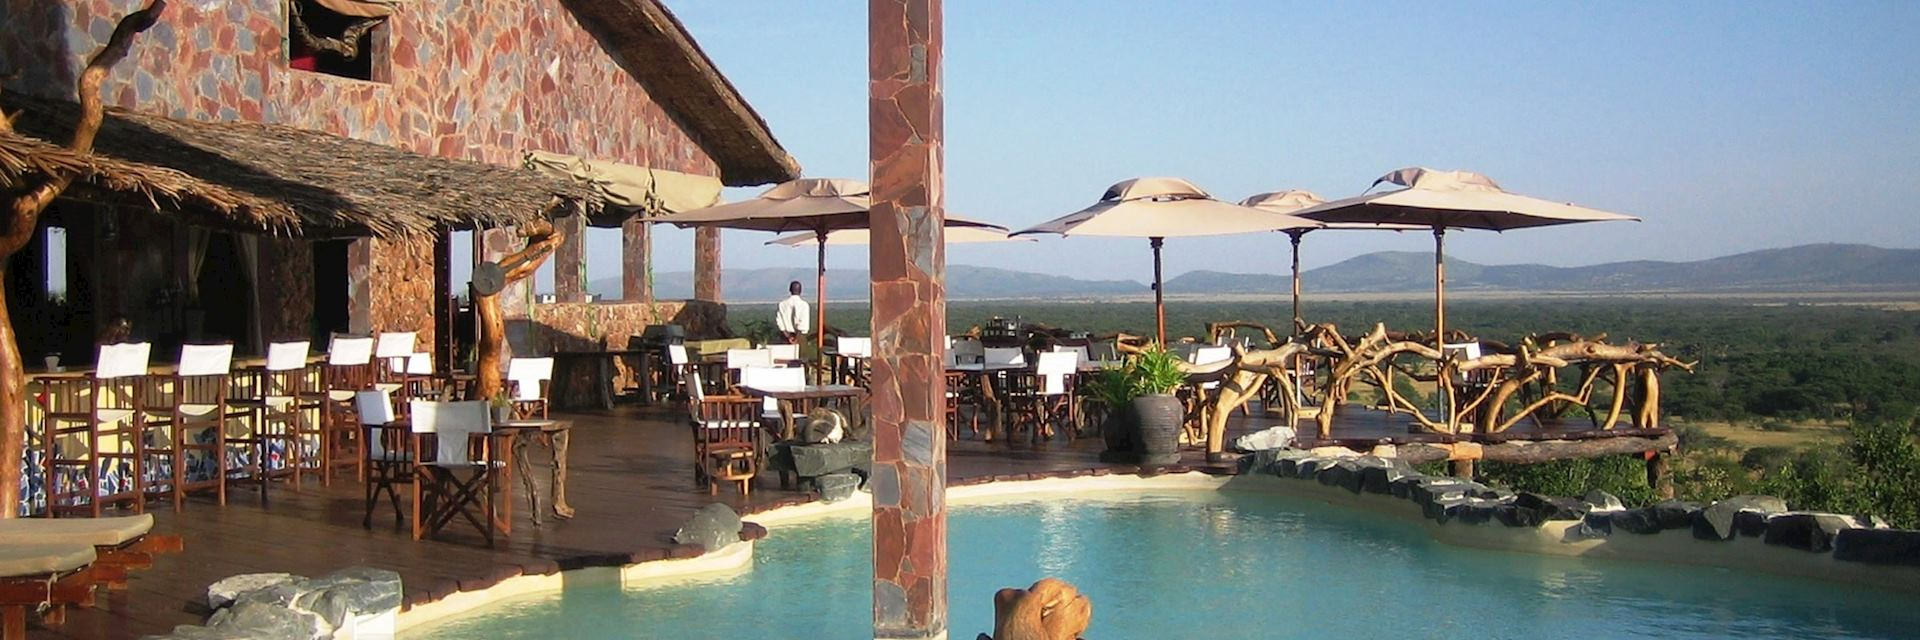 Mbalageti Lodge,Serengeti National Park